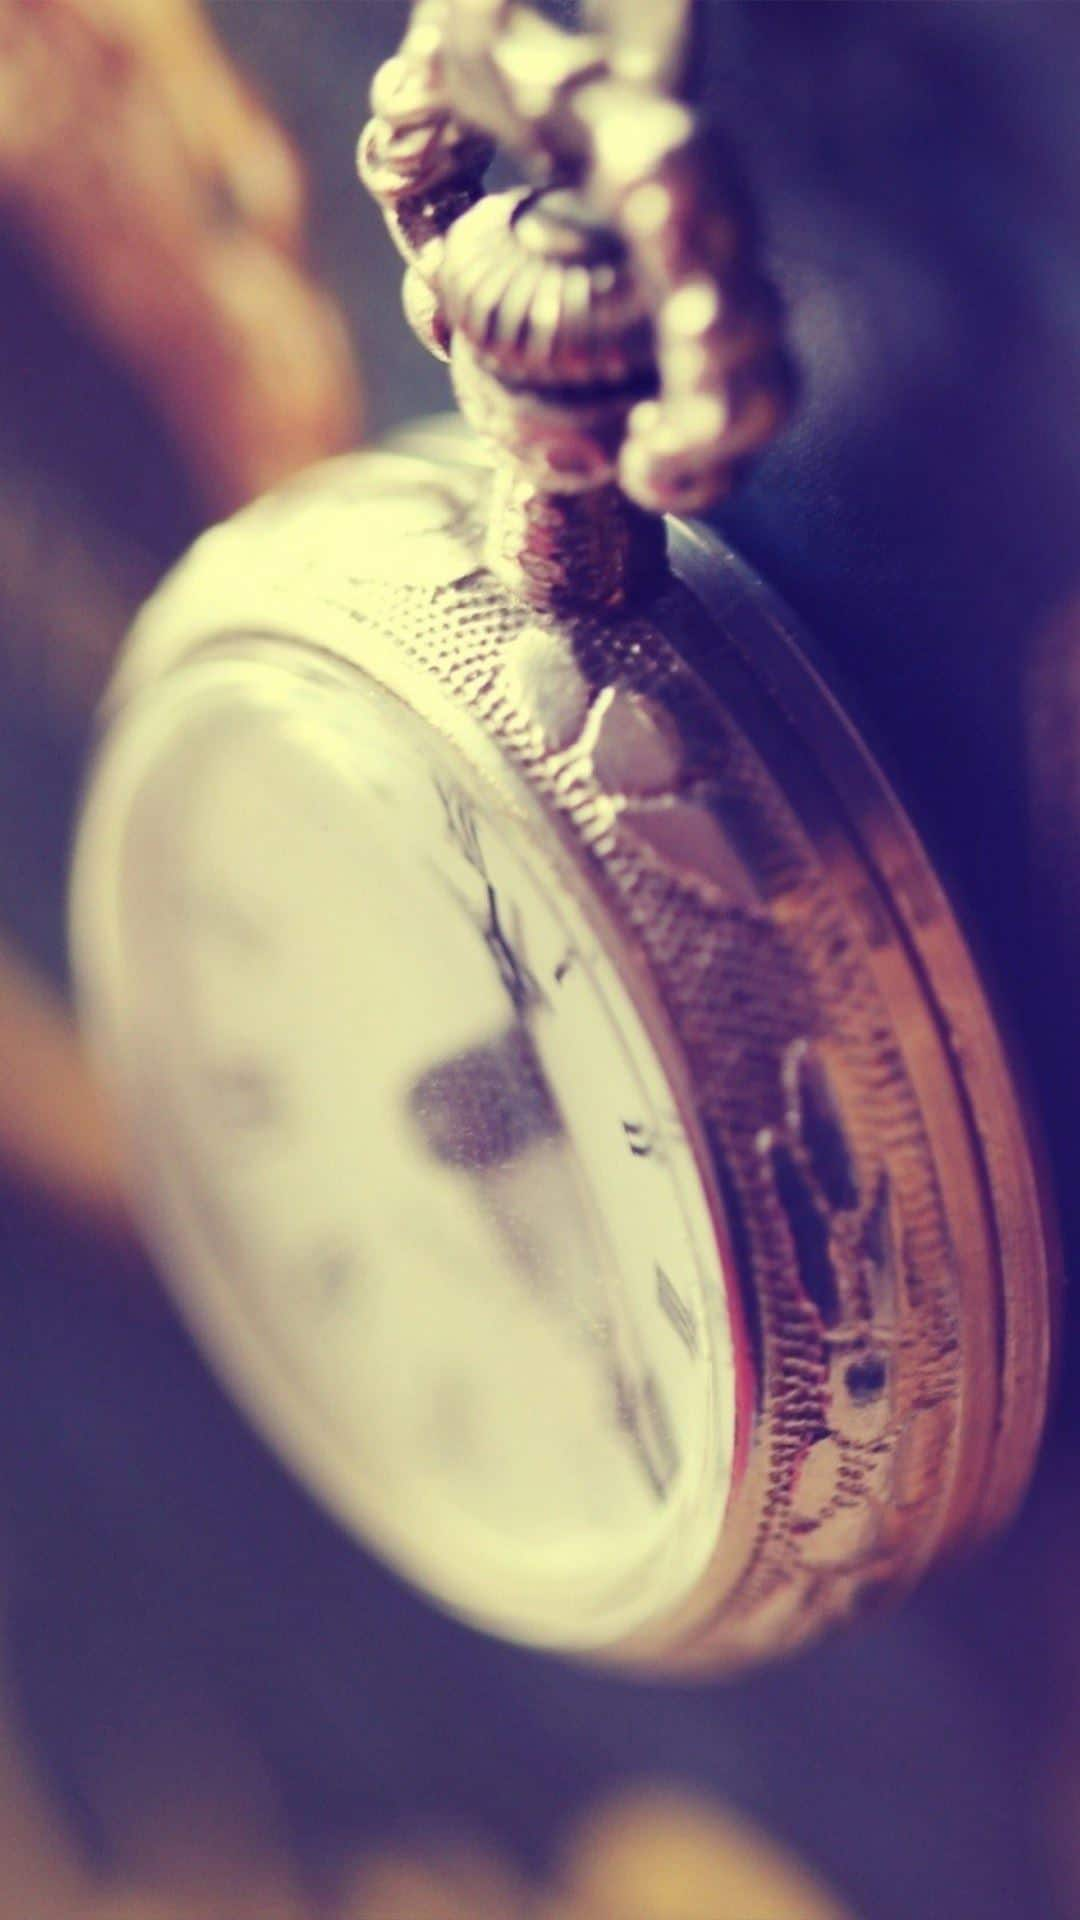 Antique Pocket Watch Android Wallpaper